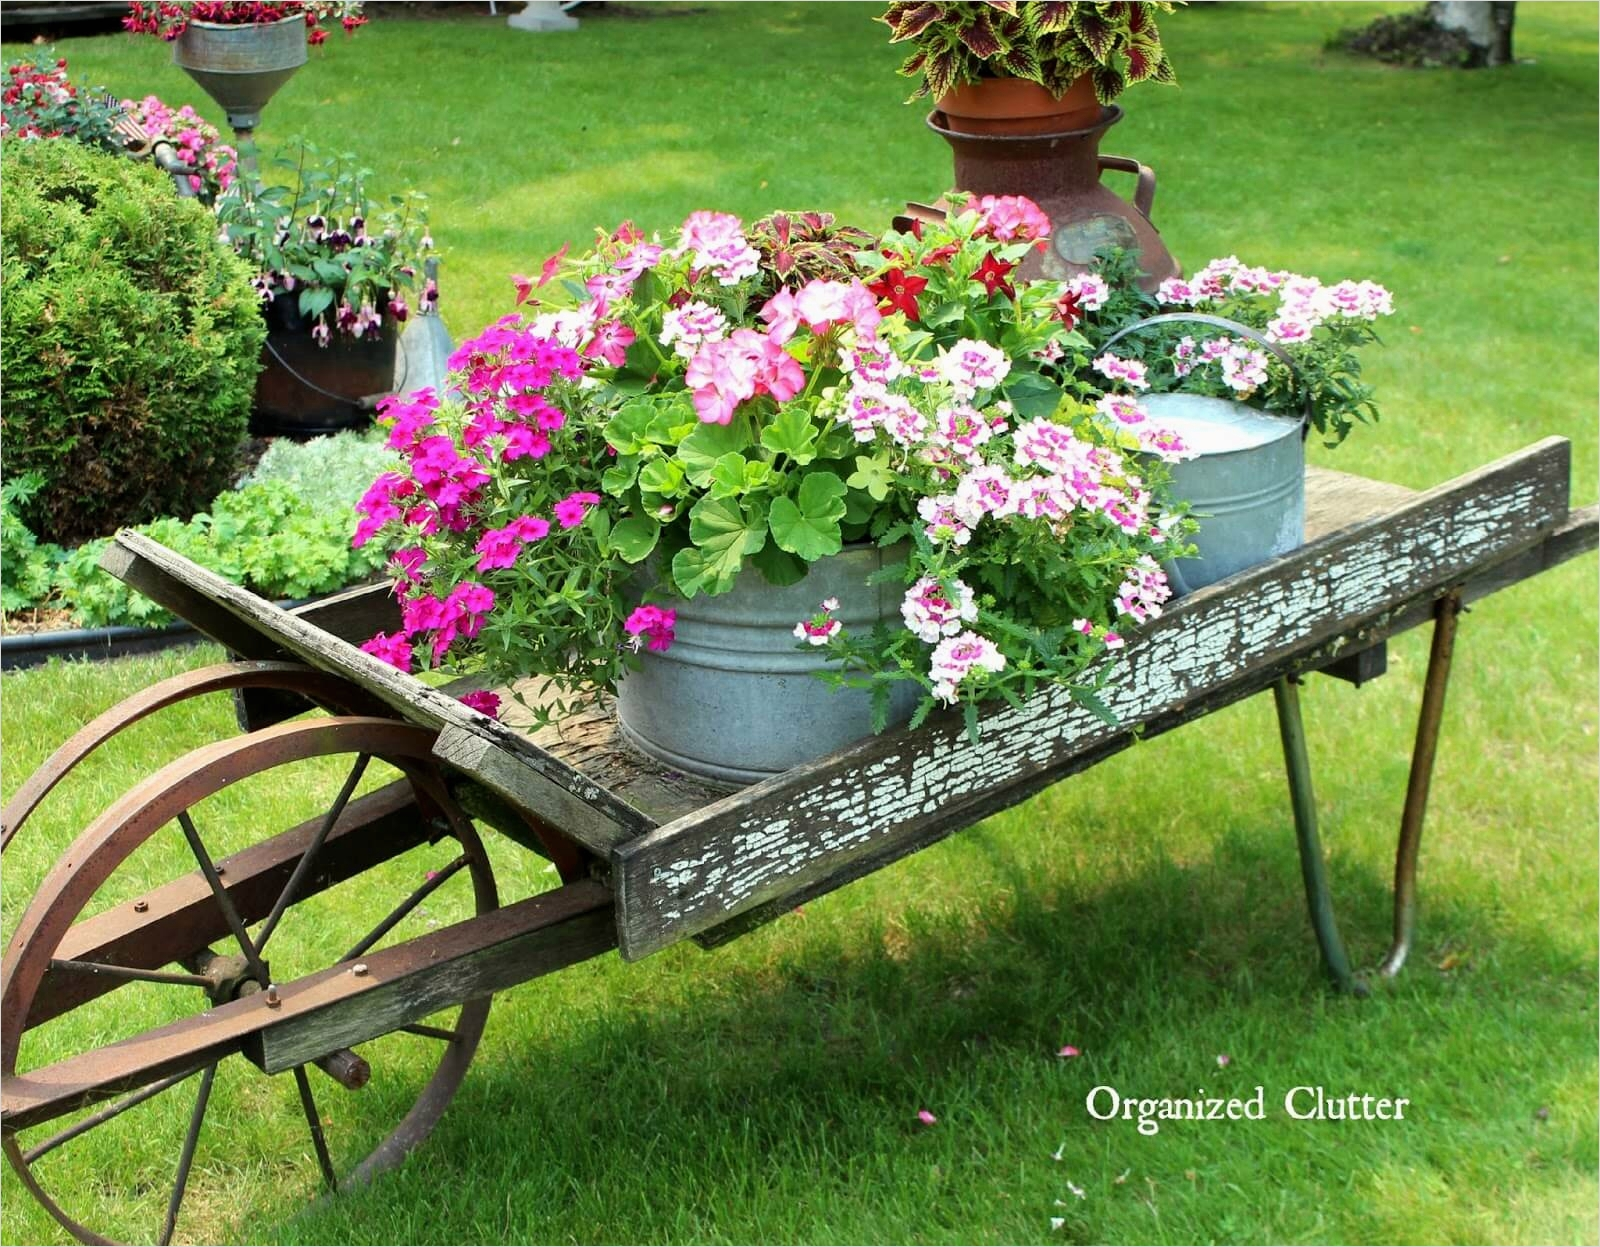 42 Beautiful Vintage Yard Decorating Ideas 61 34 Best Vintage Garden Decor Ideas and Designs for 2017 5